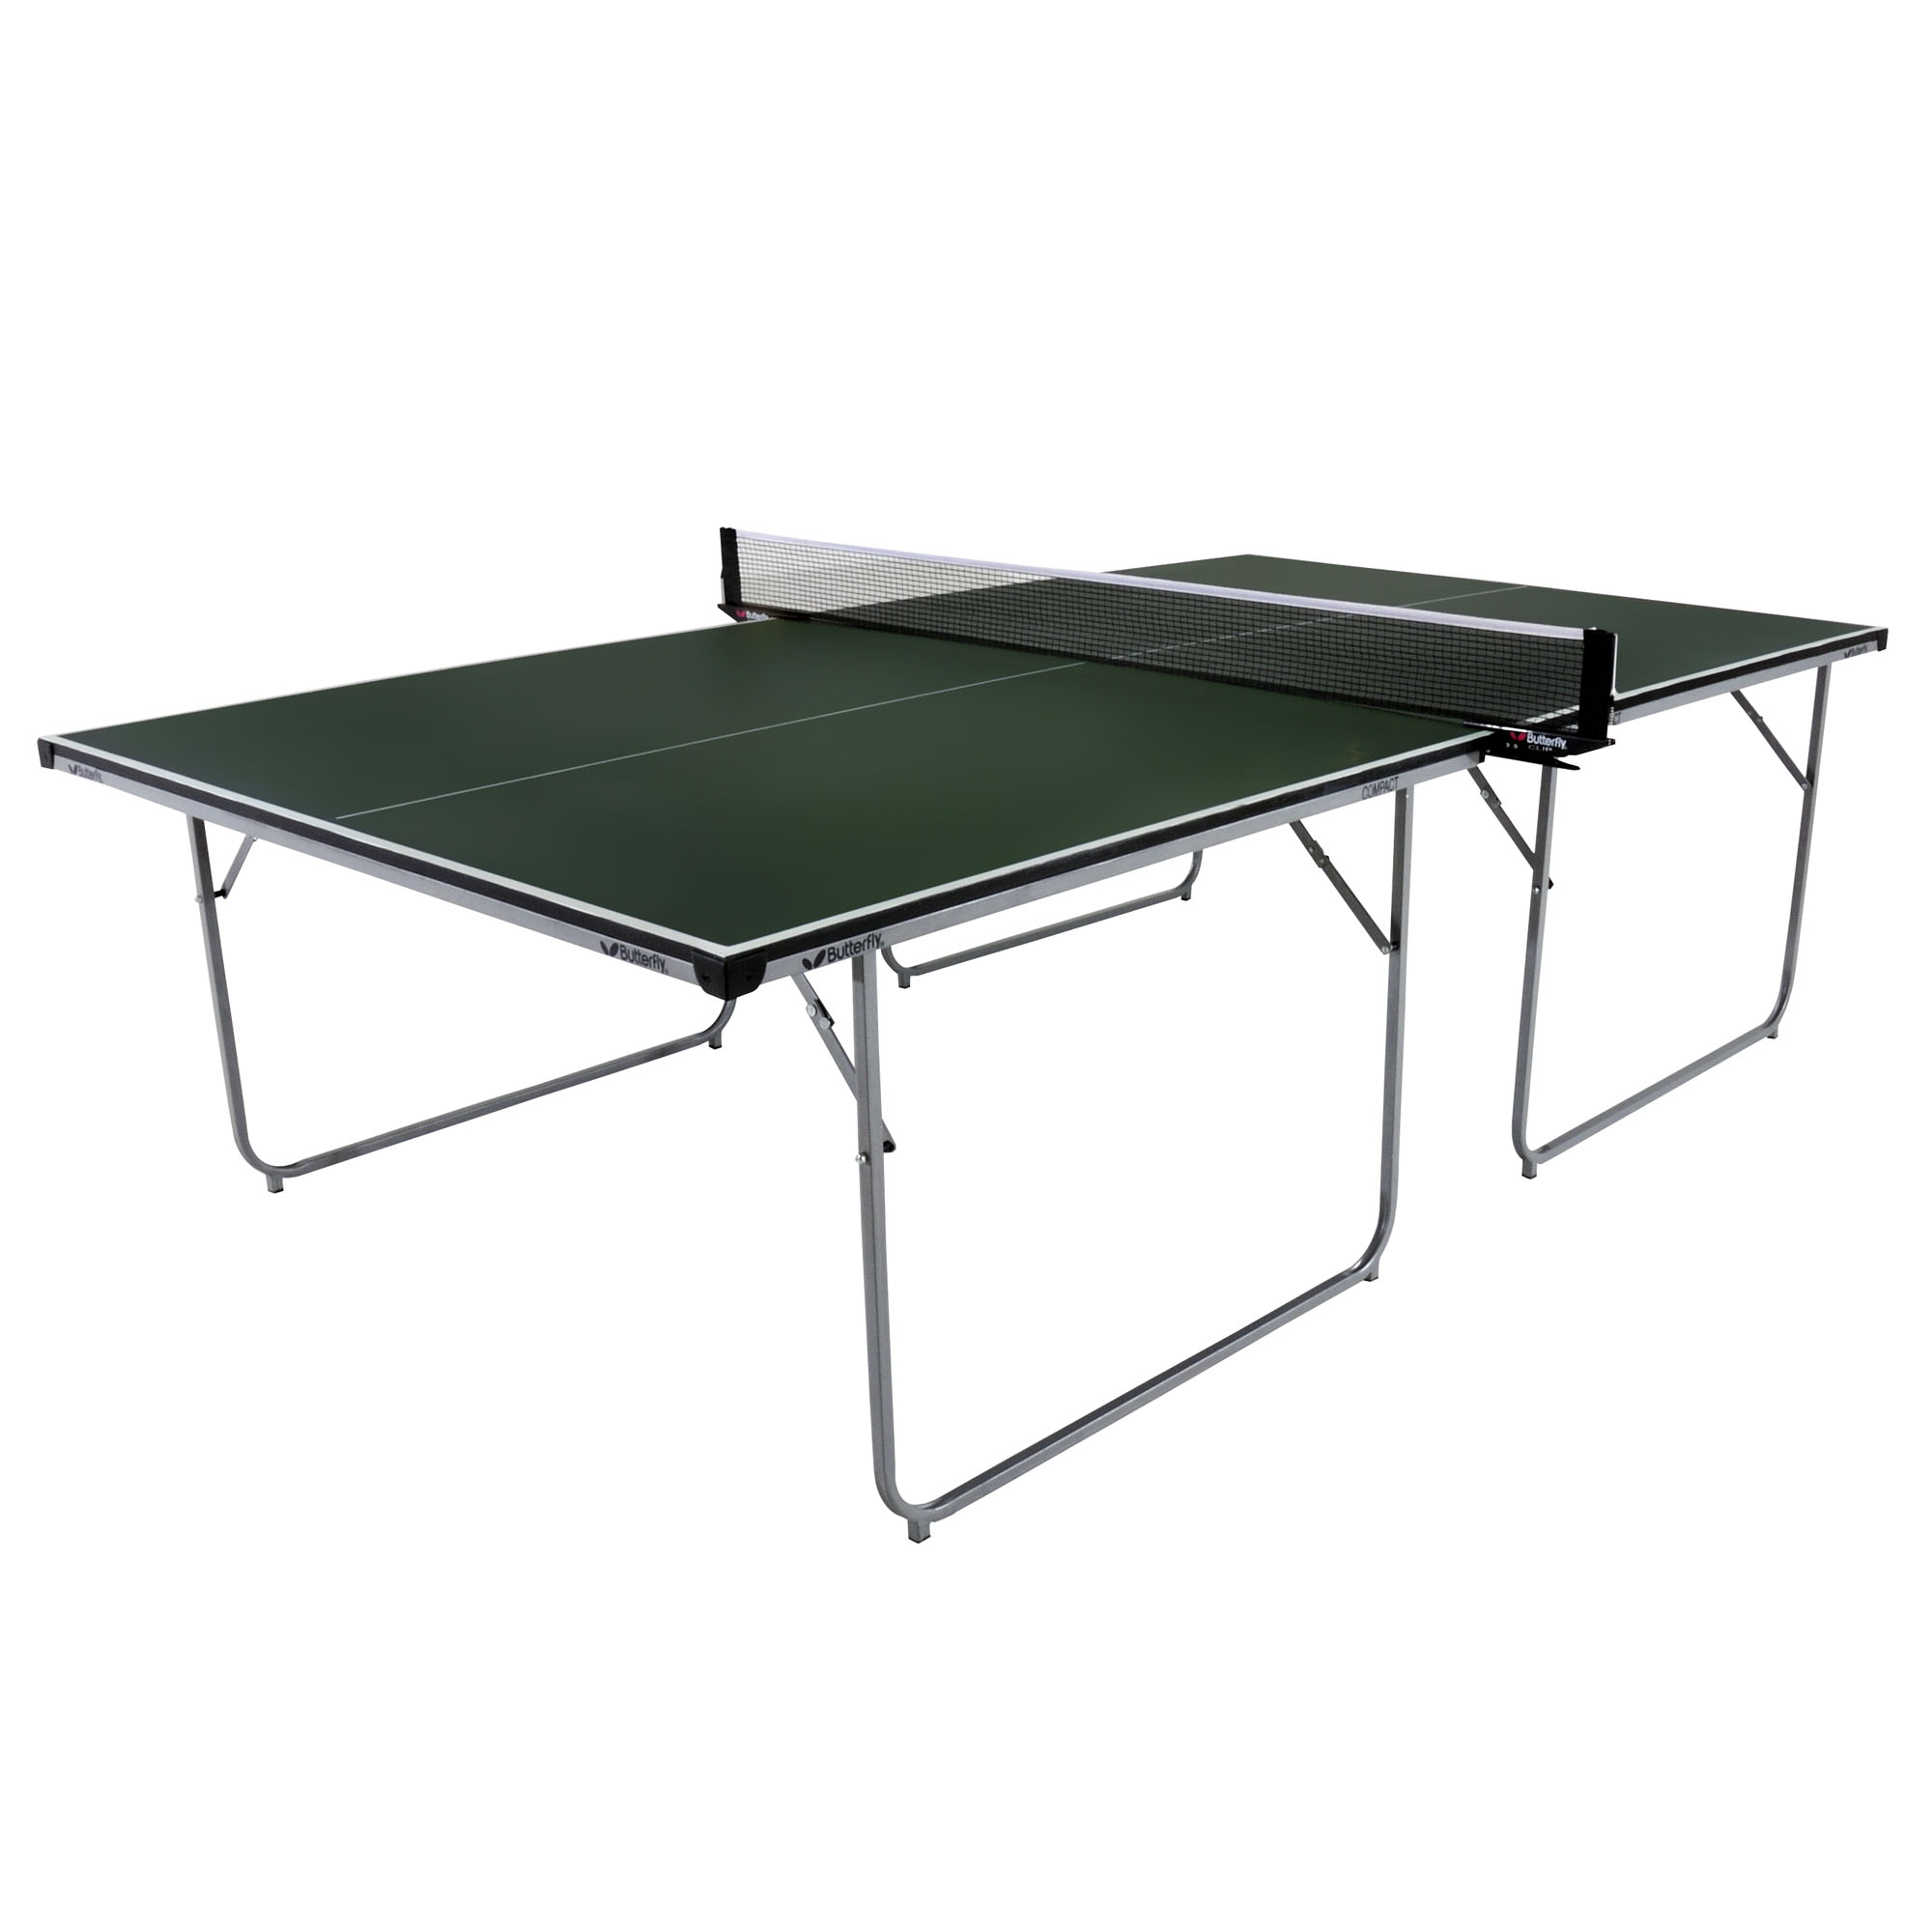 Butterfly compact indoor table tennis table compare for Table tennis 99